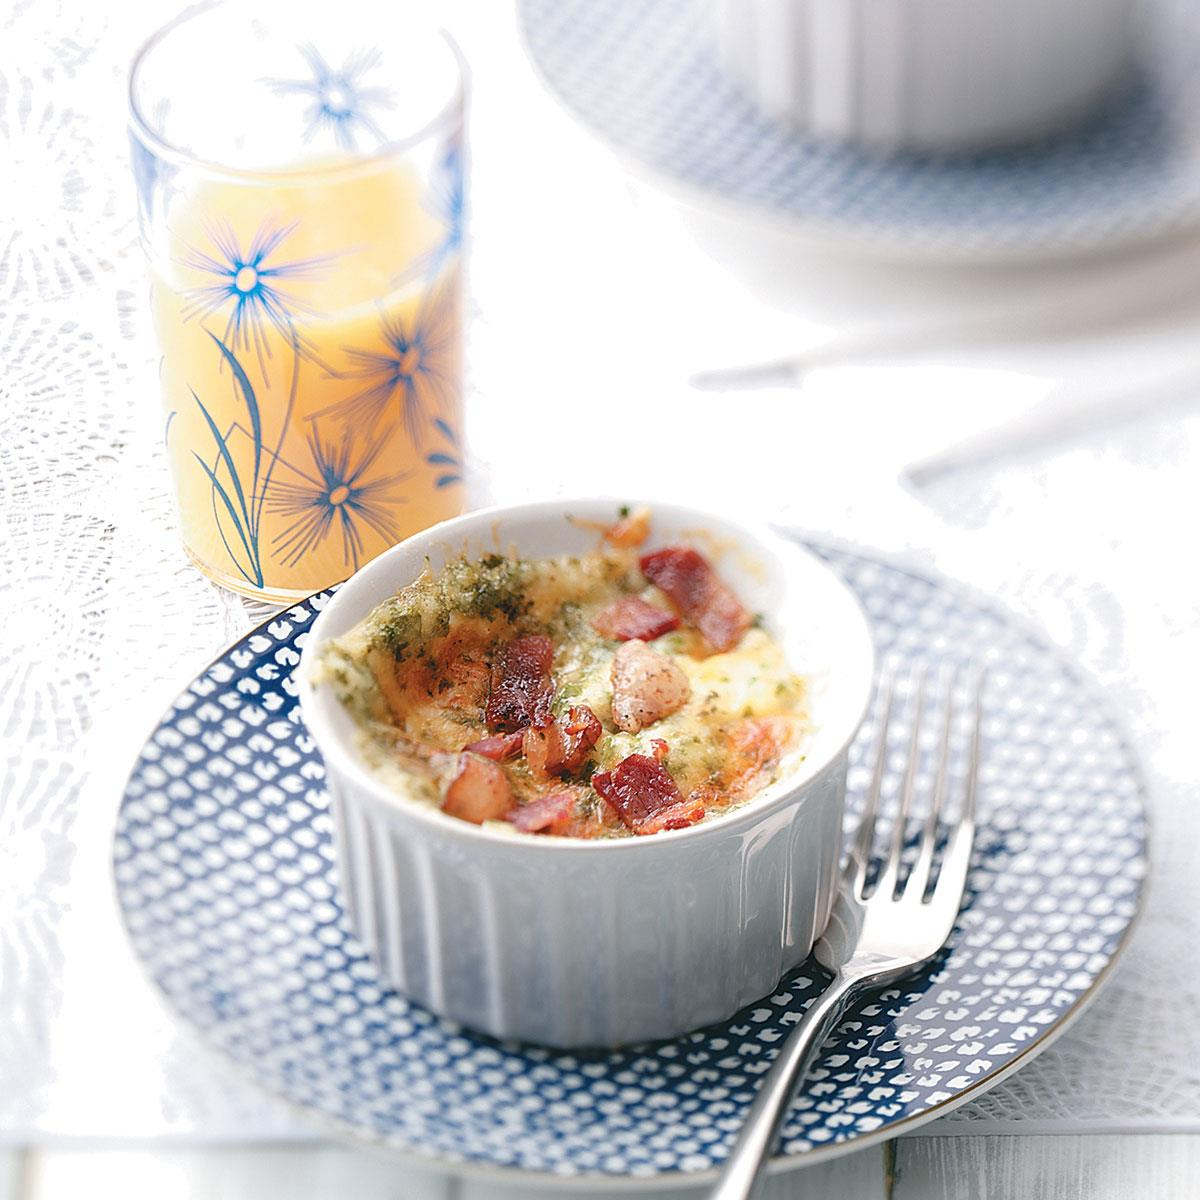 Baked Eggs with Cheddar and Bacon   Taste of Home